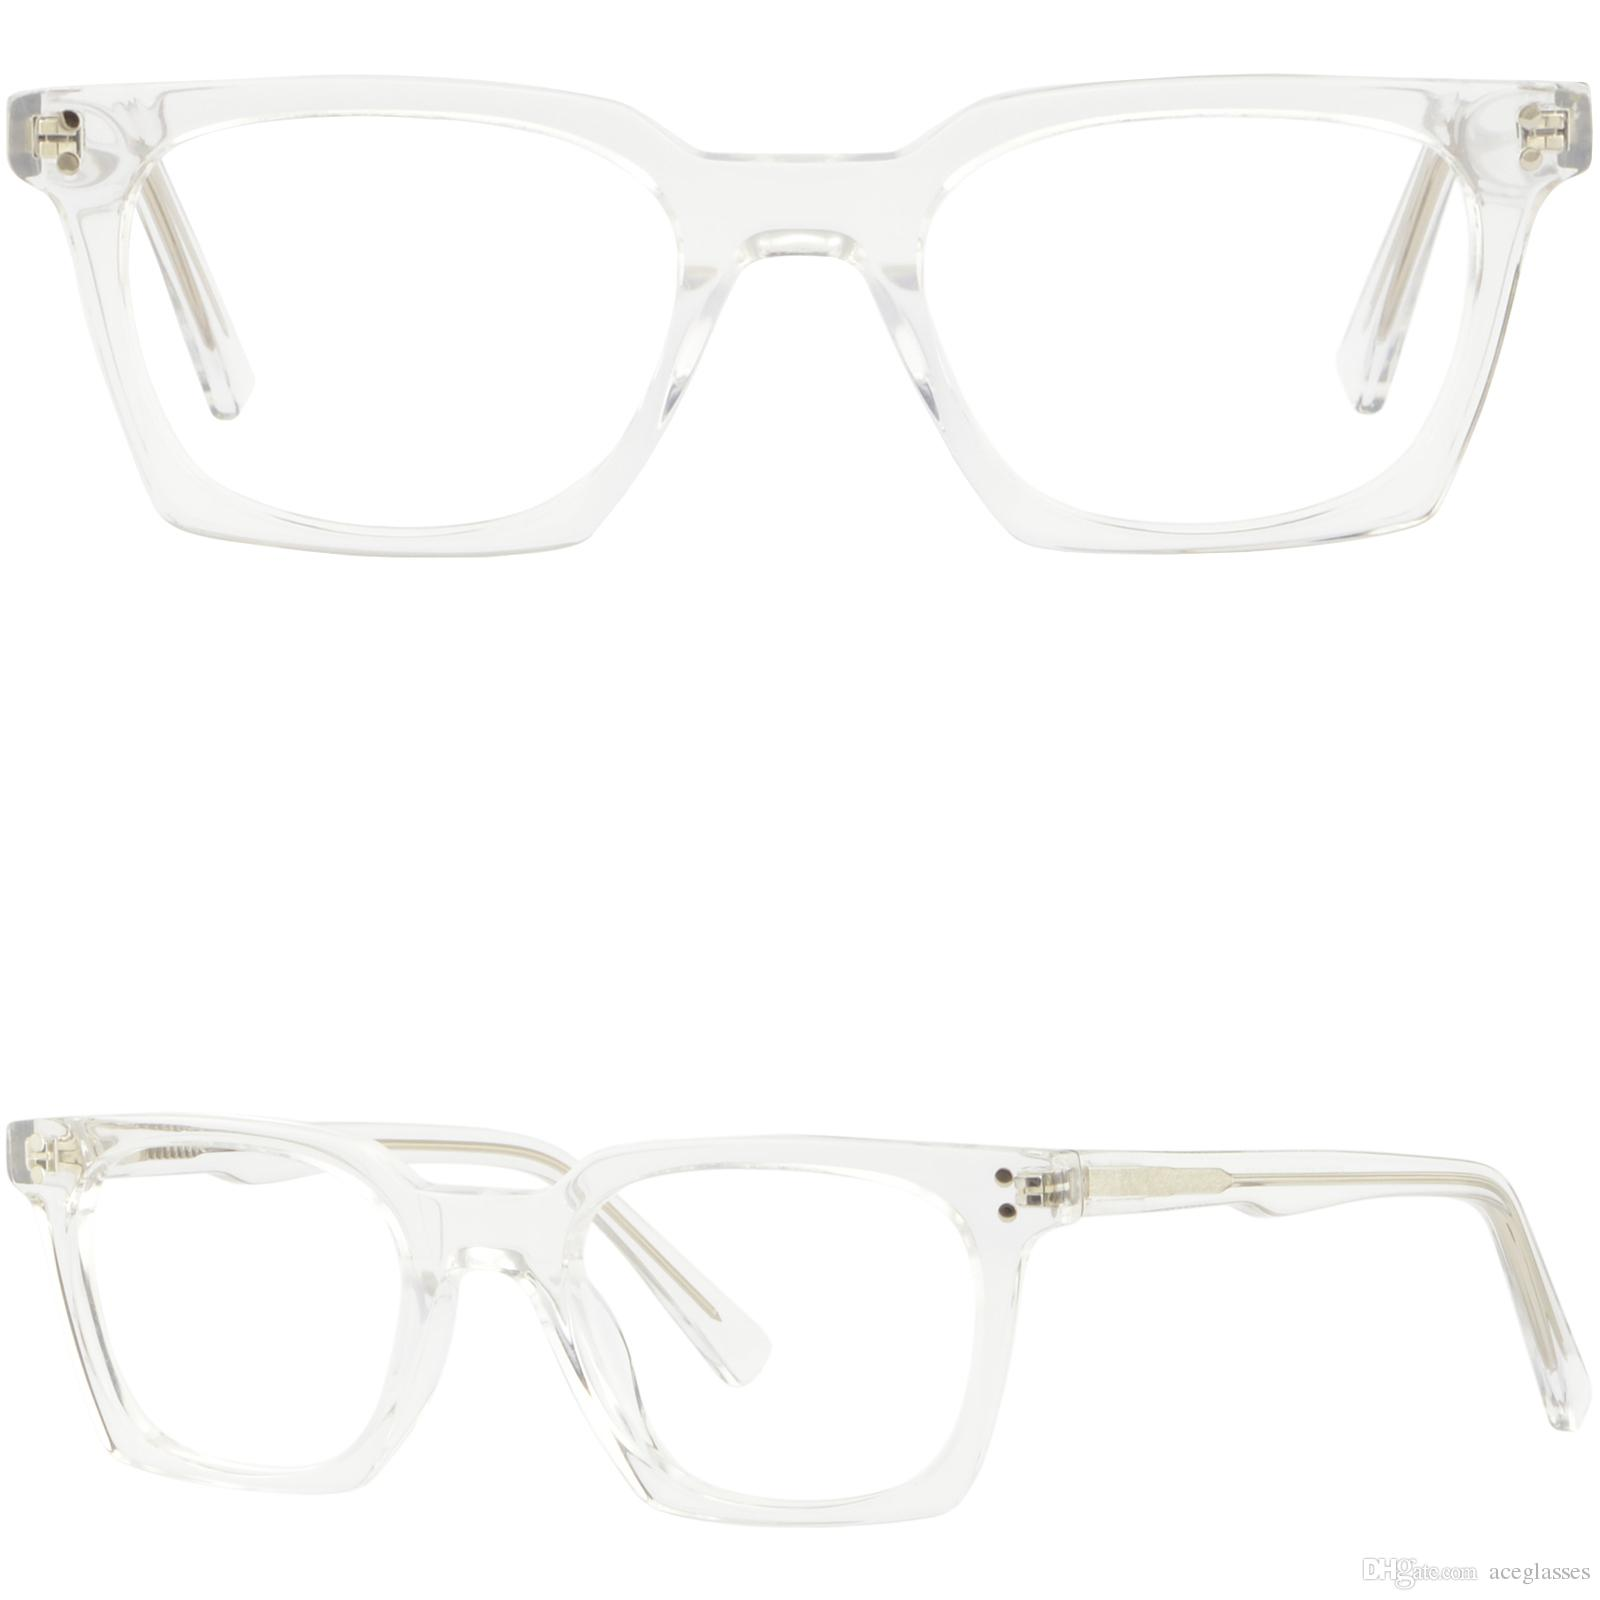 d27de61884 Small Narrow Boys Girls Womens Clear Acetate Frames Square Glasses Spring  Hinges Glasses Frame Online with  31.08 Piece on Aceglasses s Store